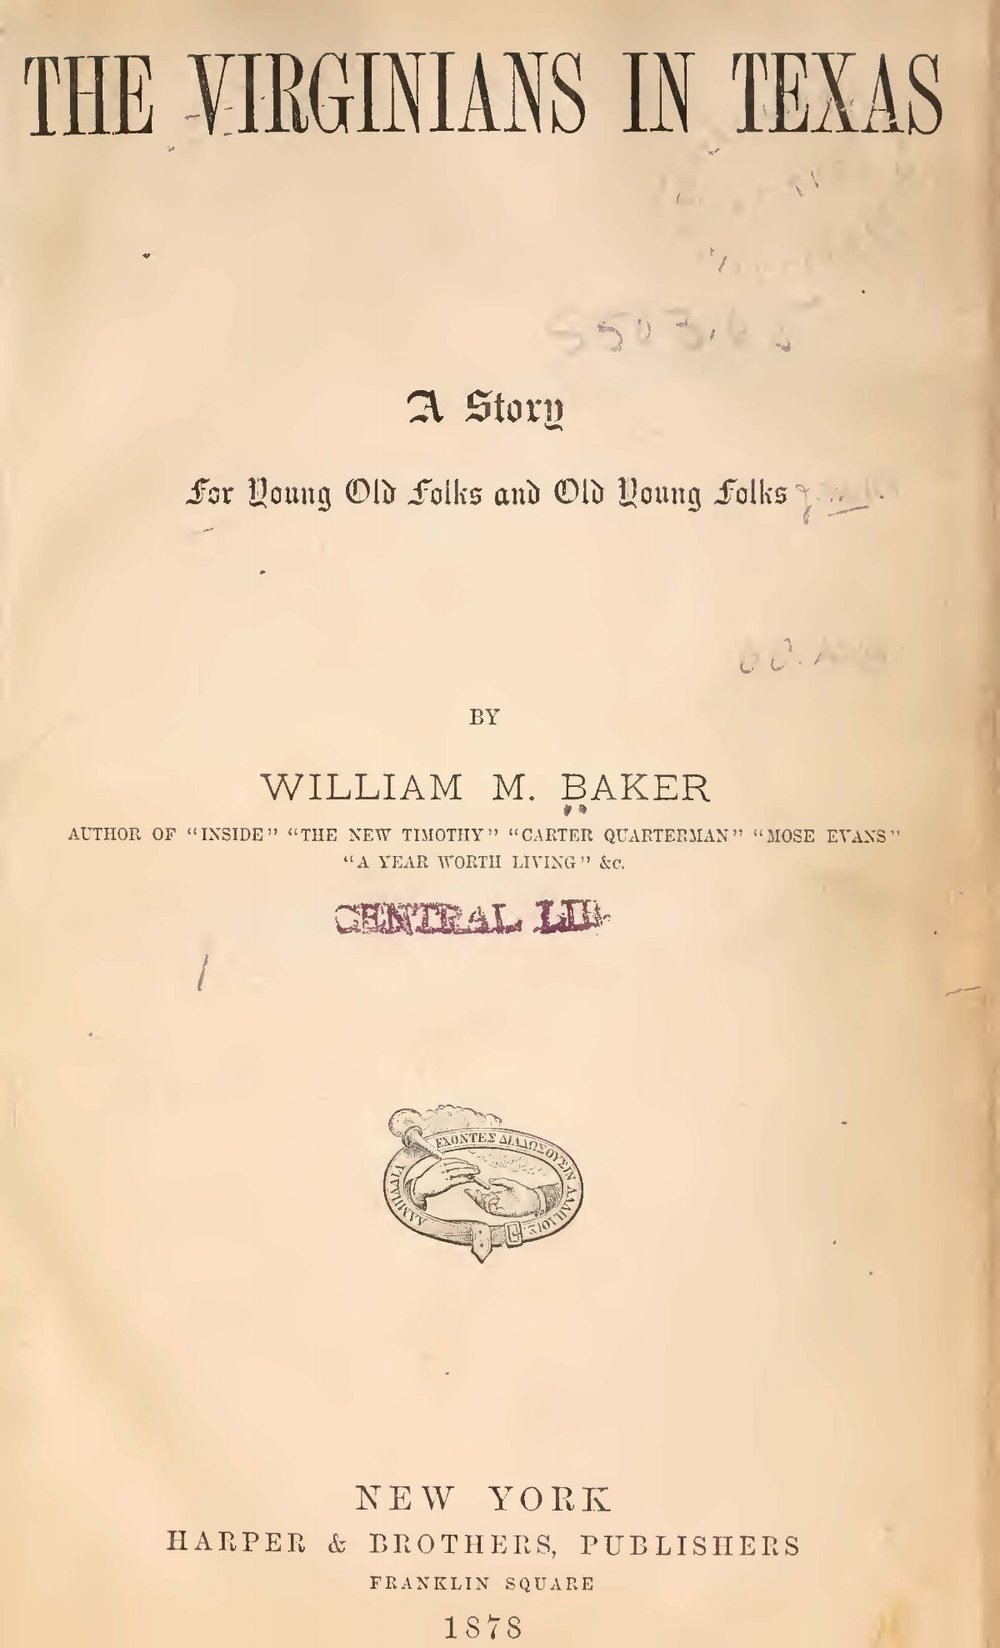 Baker, William Munford, The Virginians in Texas Title Page.jpg